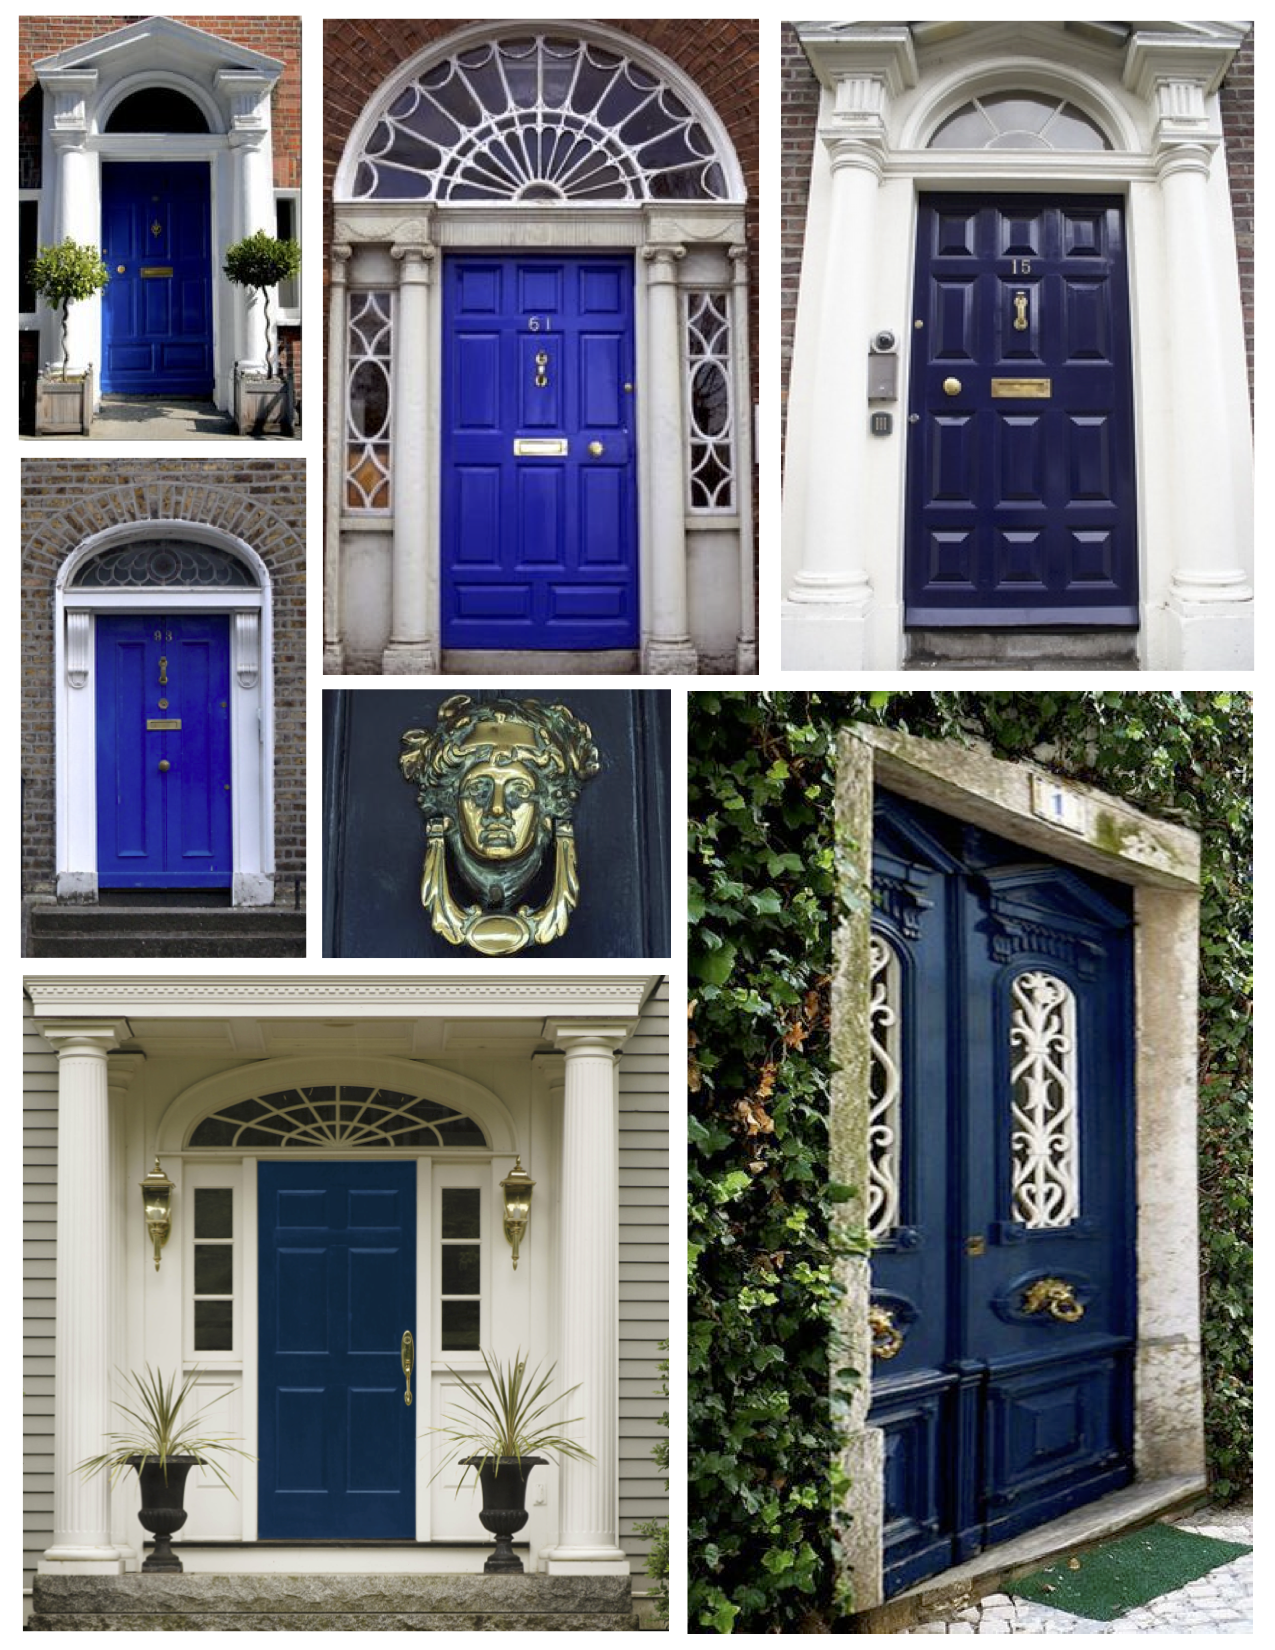 ... Dramatic U0026 Regal: The Painted Blue Exterior Door